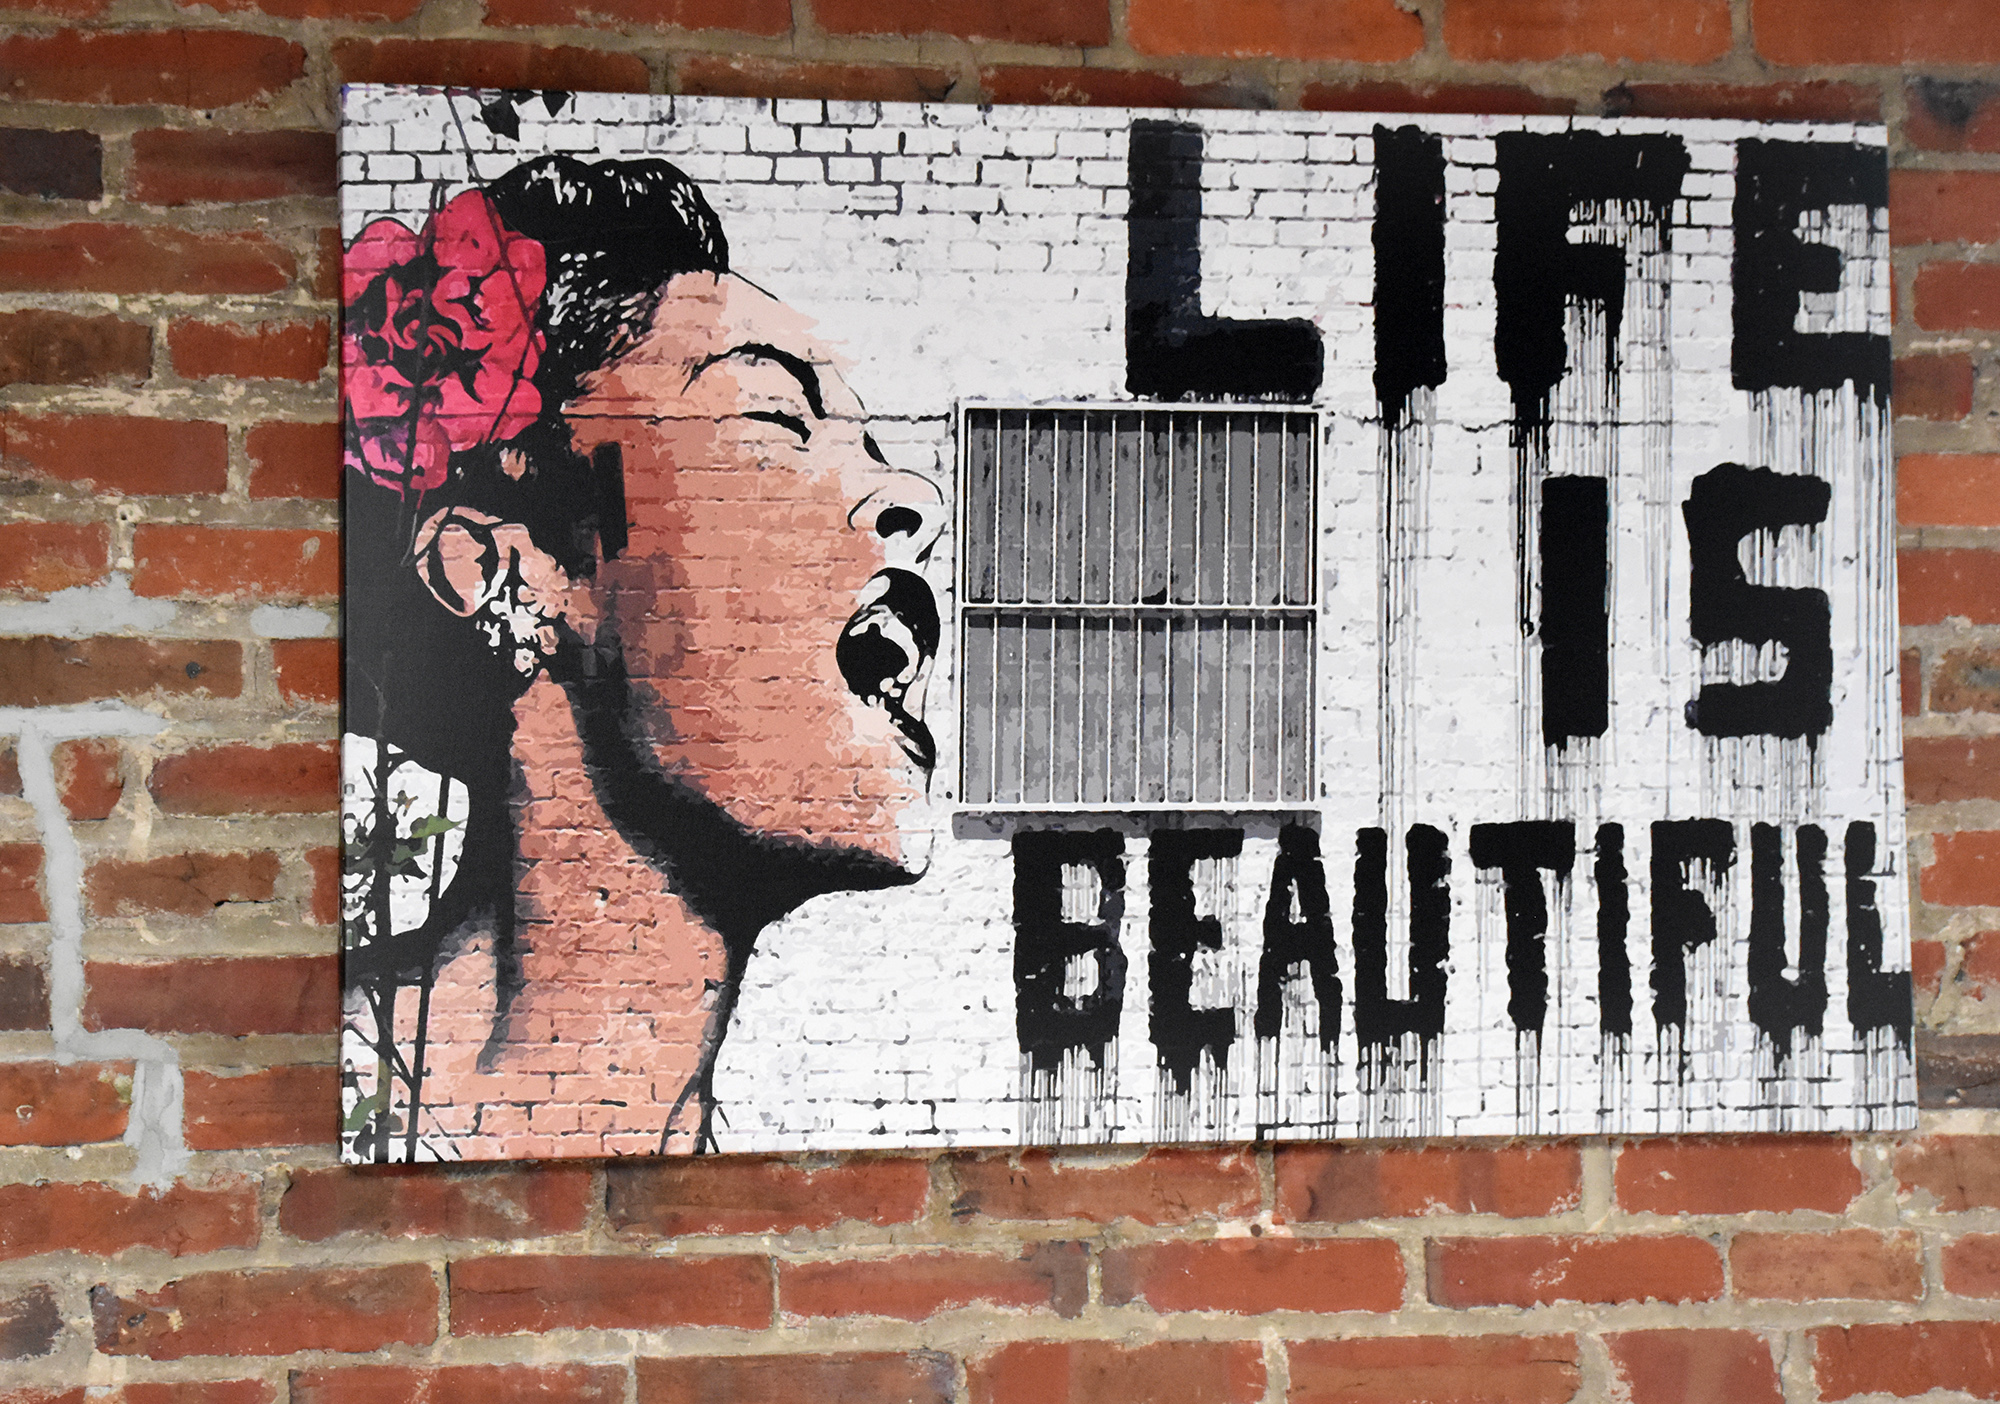 "Sprint of Banksy's ""Life as Beautiful"" featuring baltimore singer Billie Holiday"